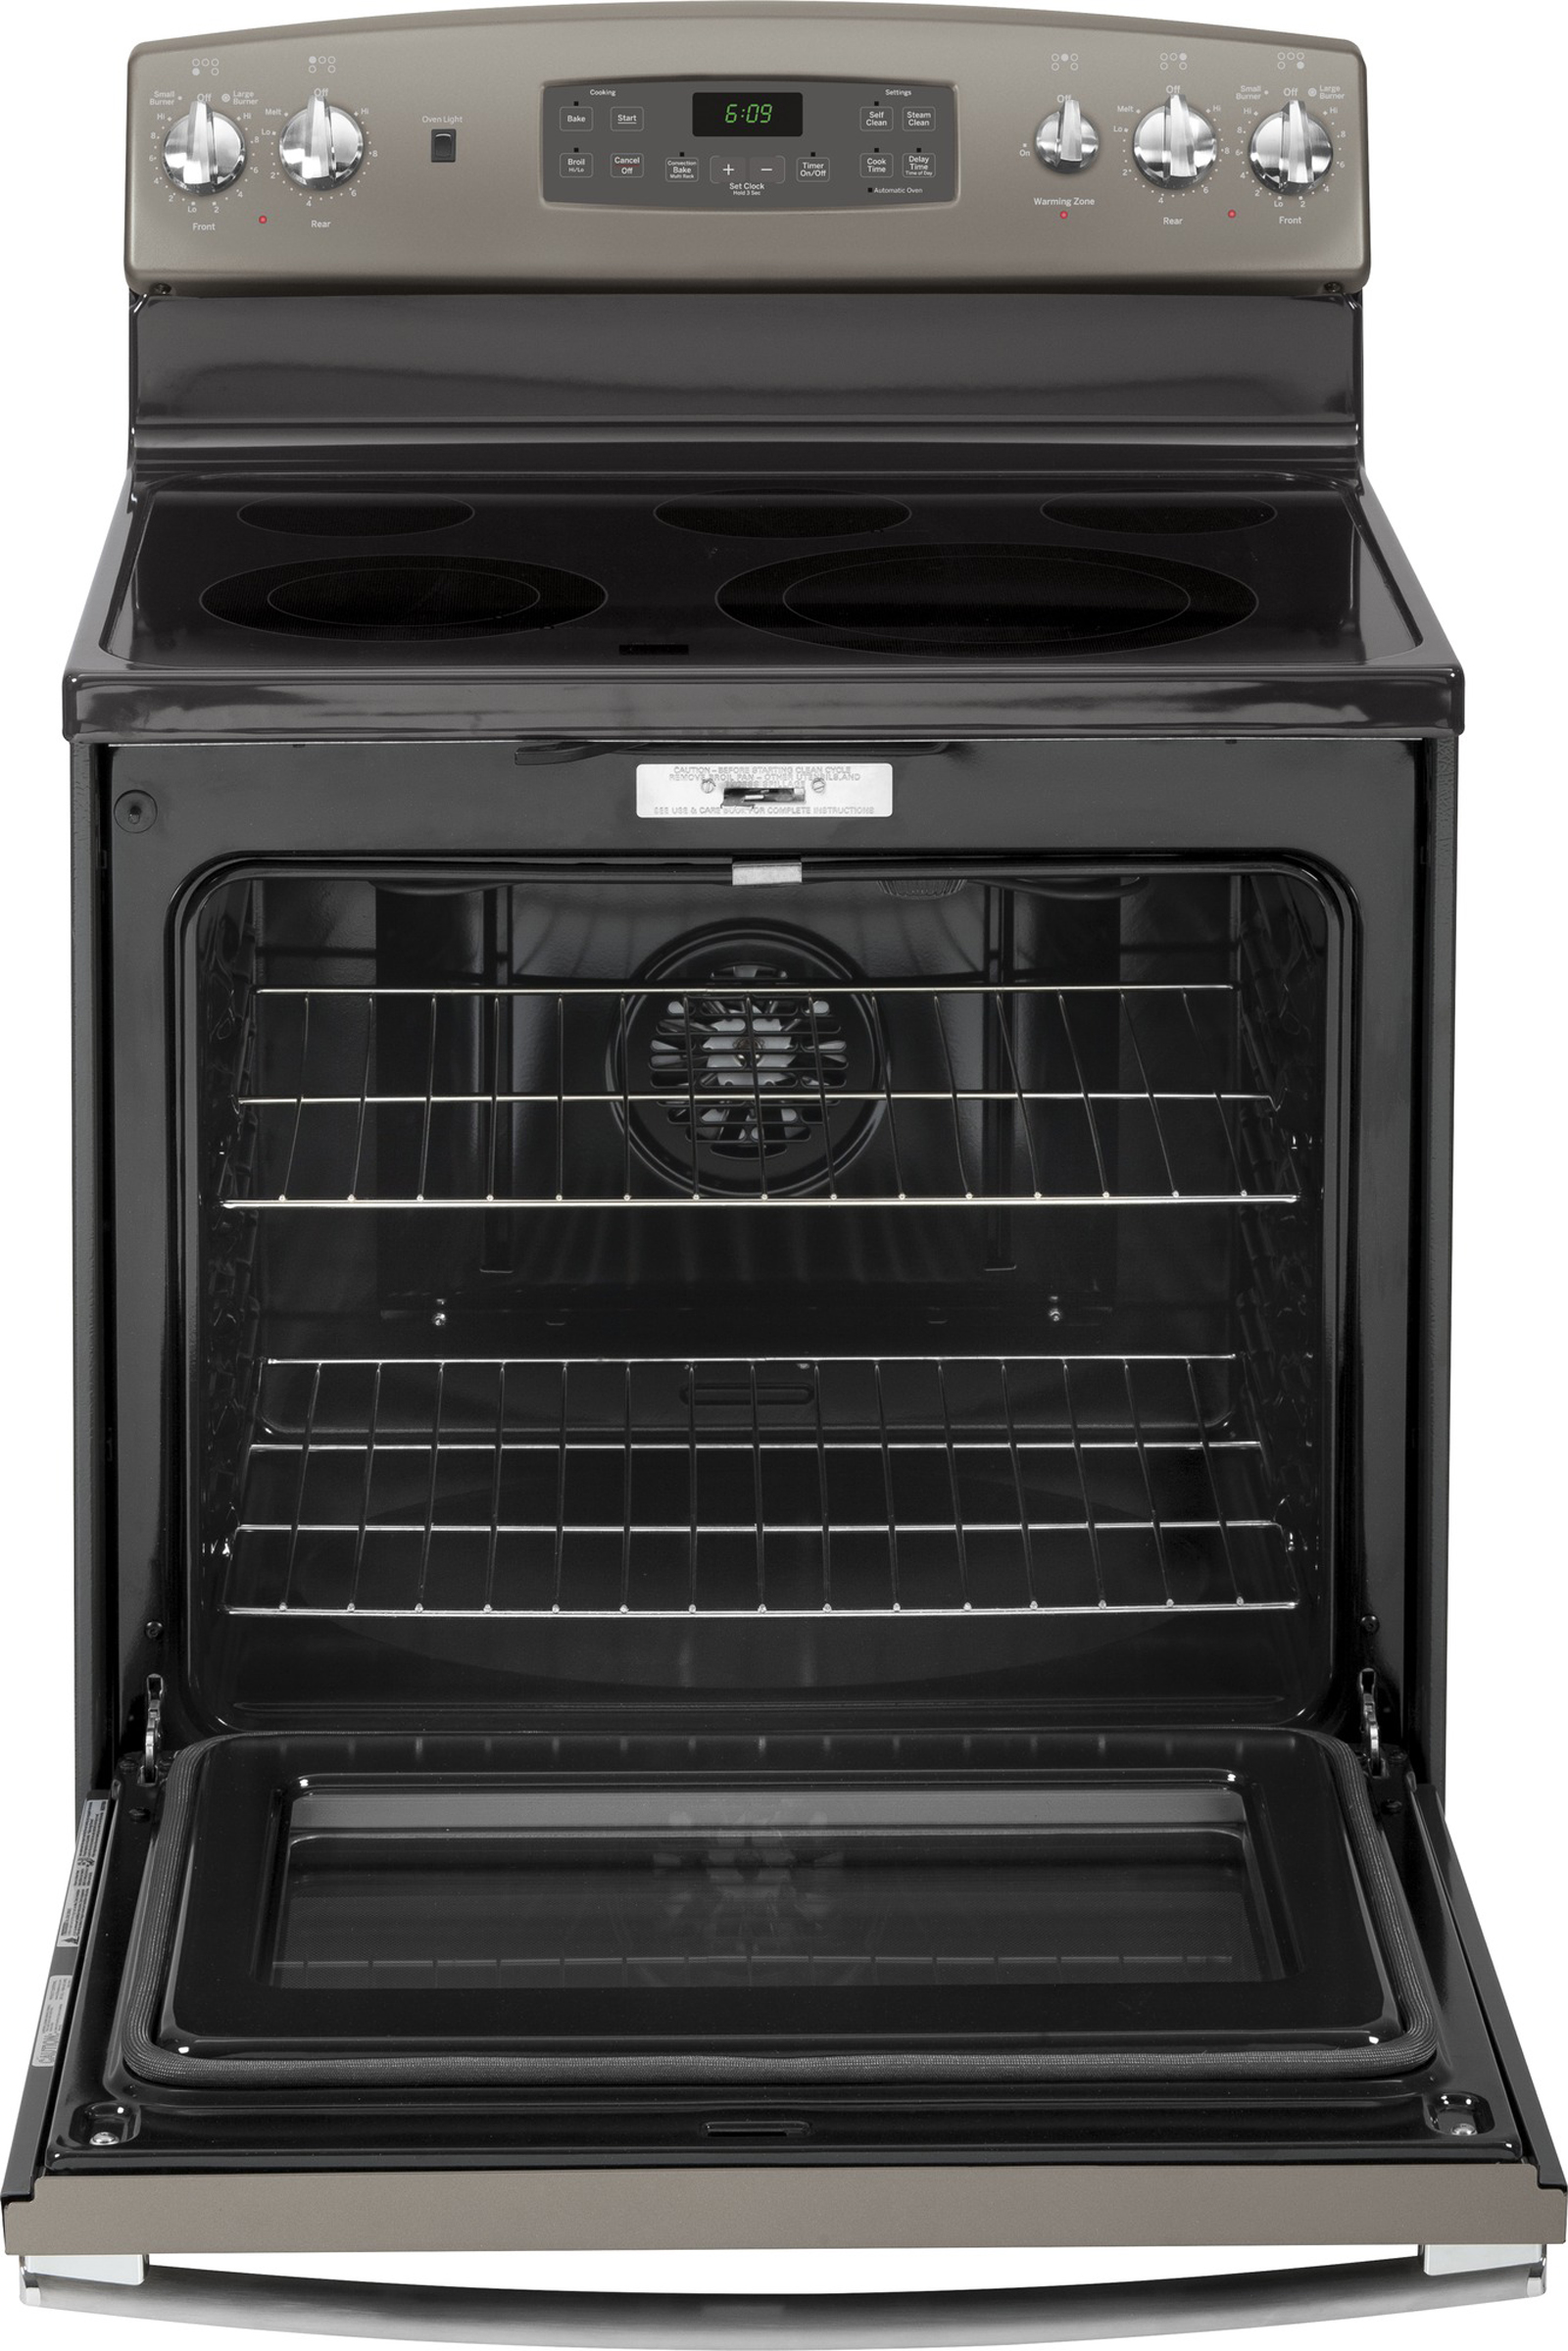 GE Appliances 5.3 cu. ft. Electric Range w/ Convection Oven - Slate